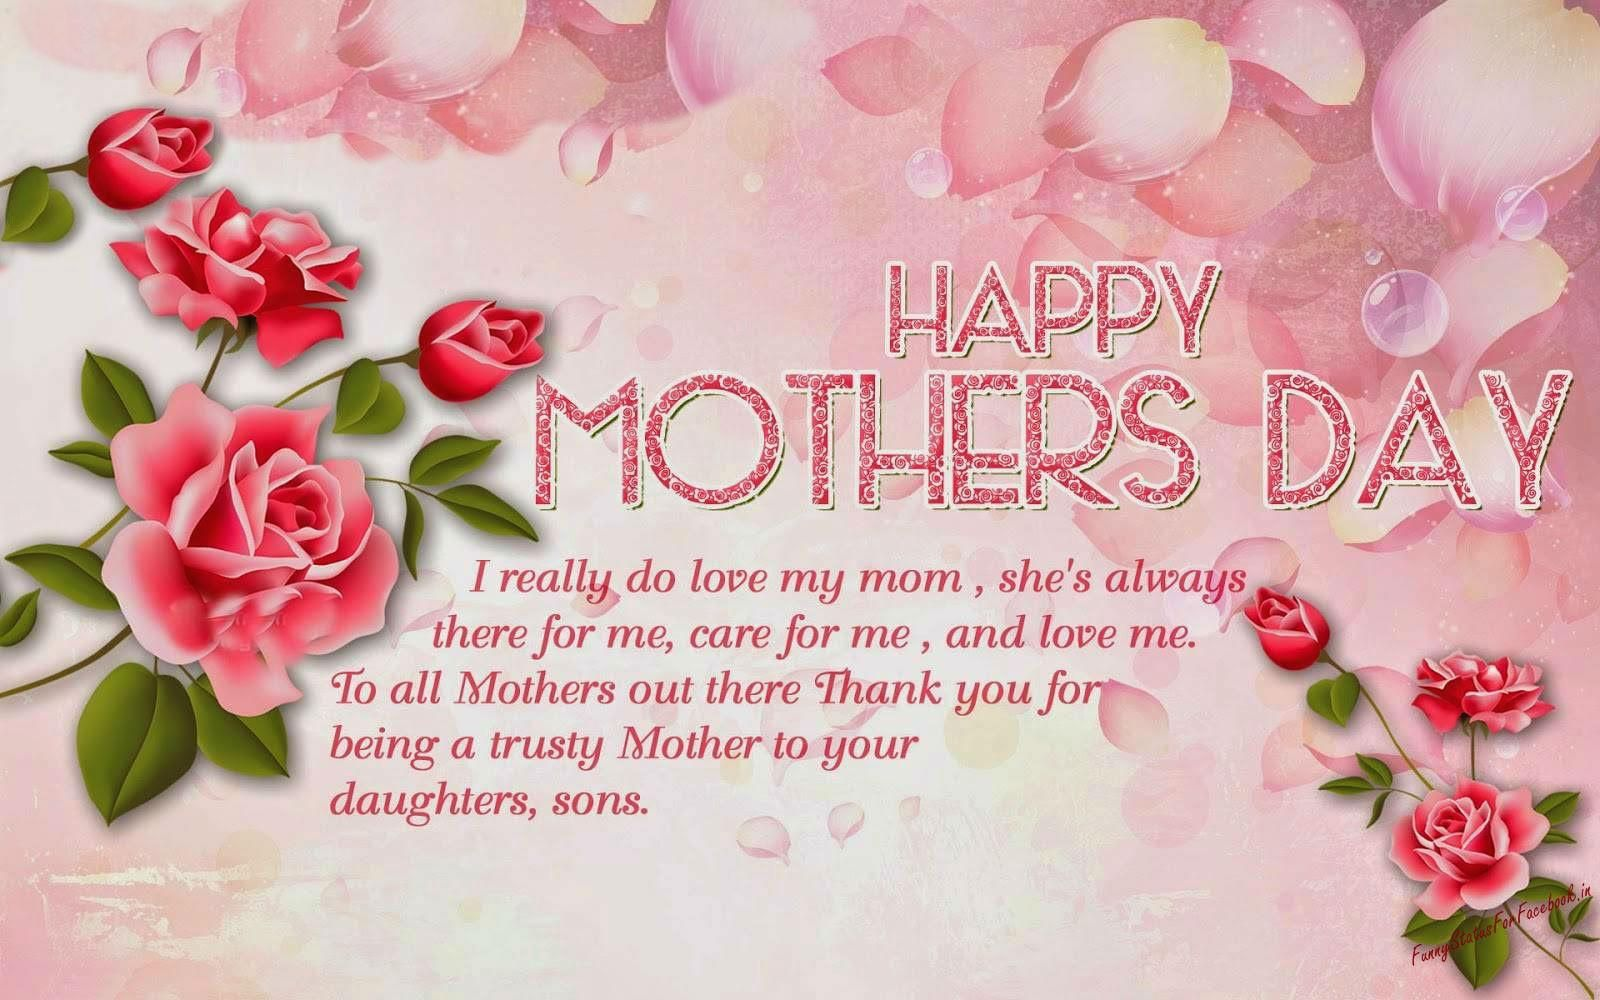 Happy Mothers Day Picture Quotes Happy Mothers Day Wishes Happy Mothers Day Messages Happy Mothers Day Poem